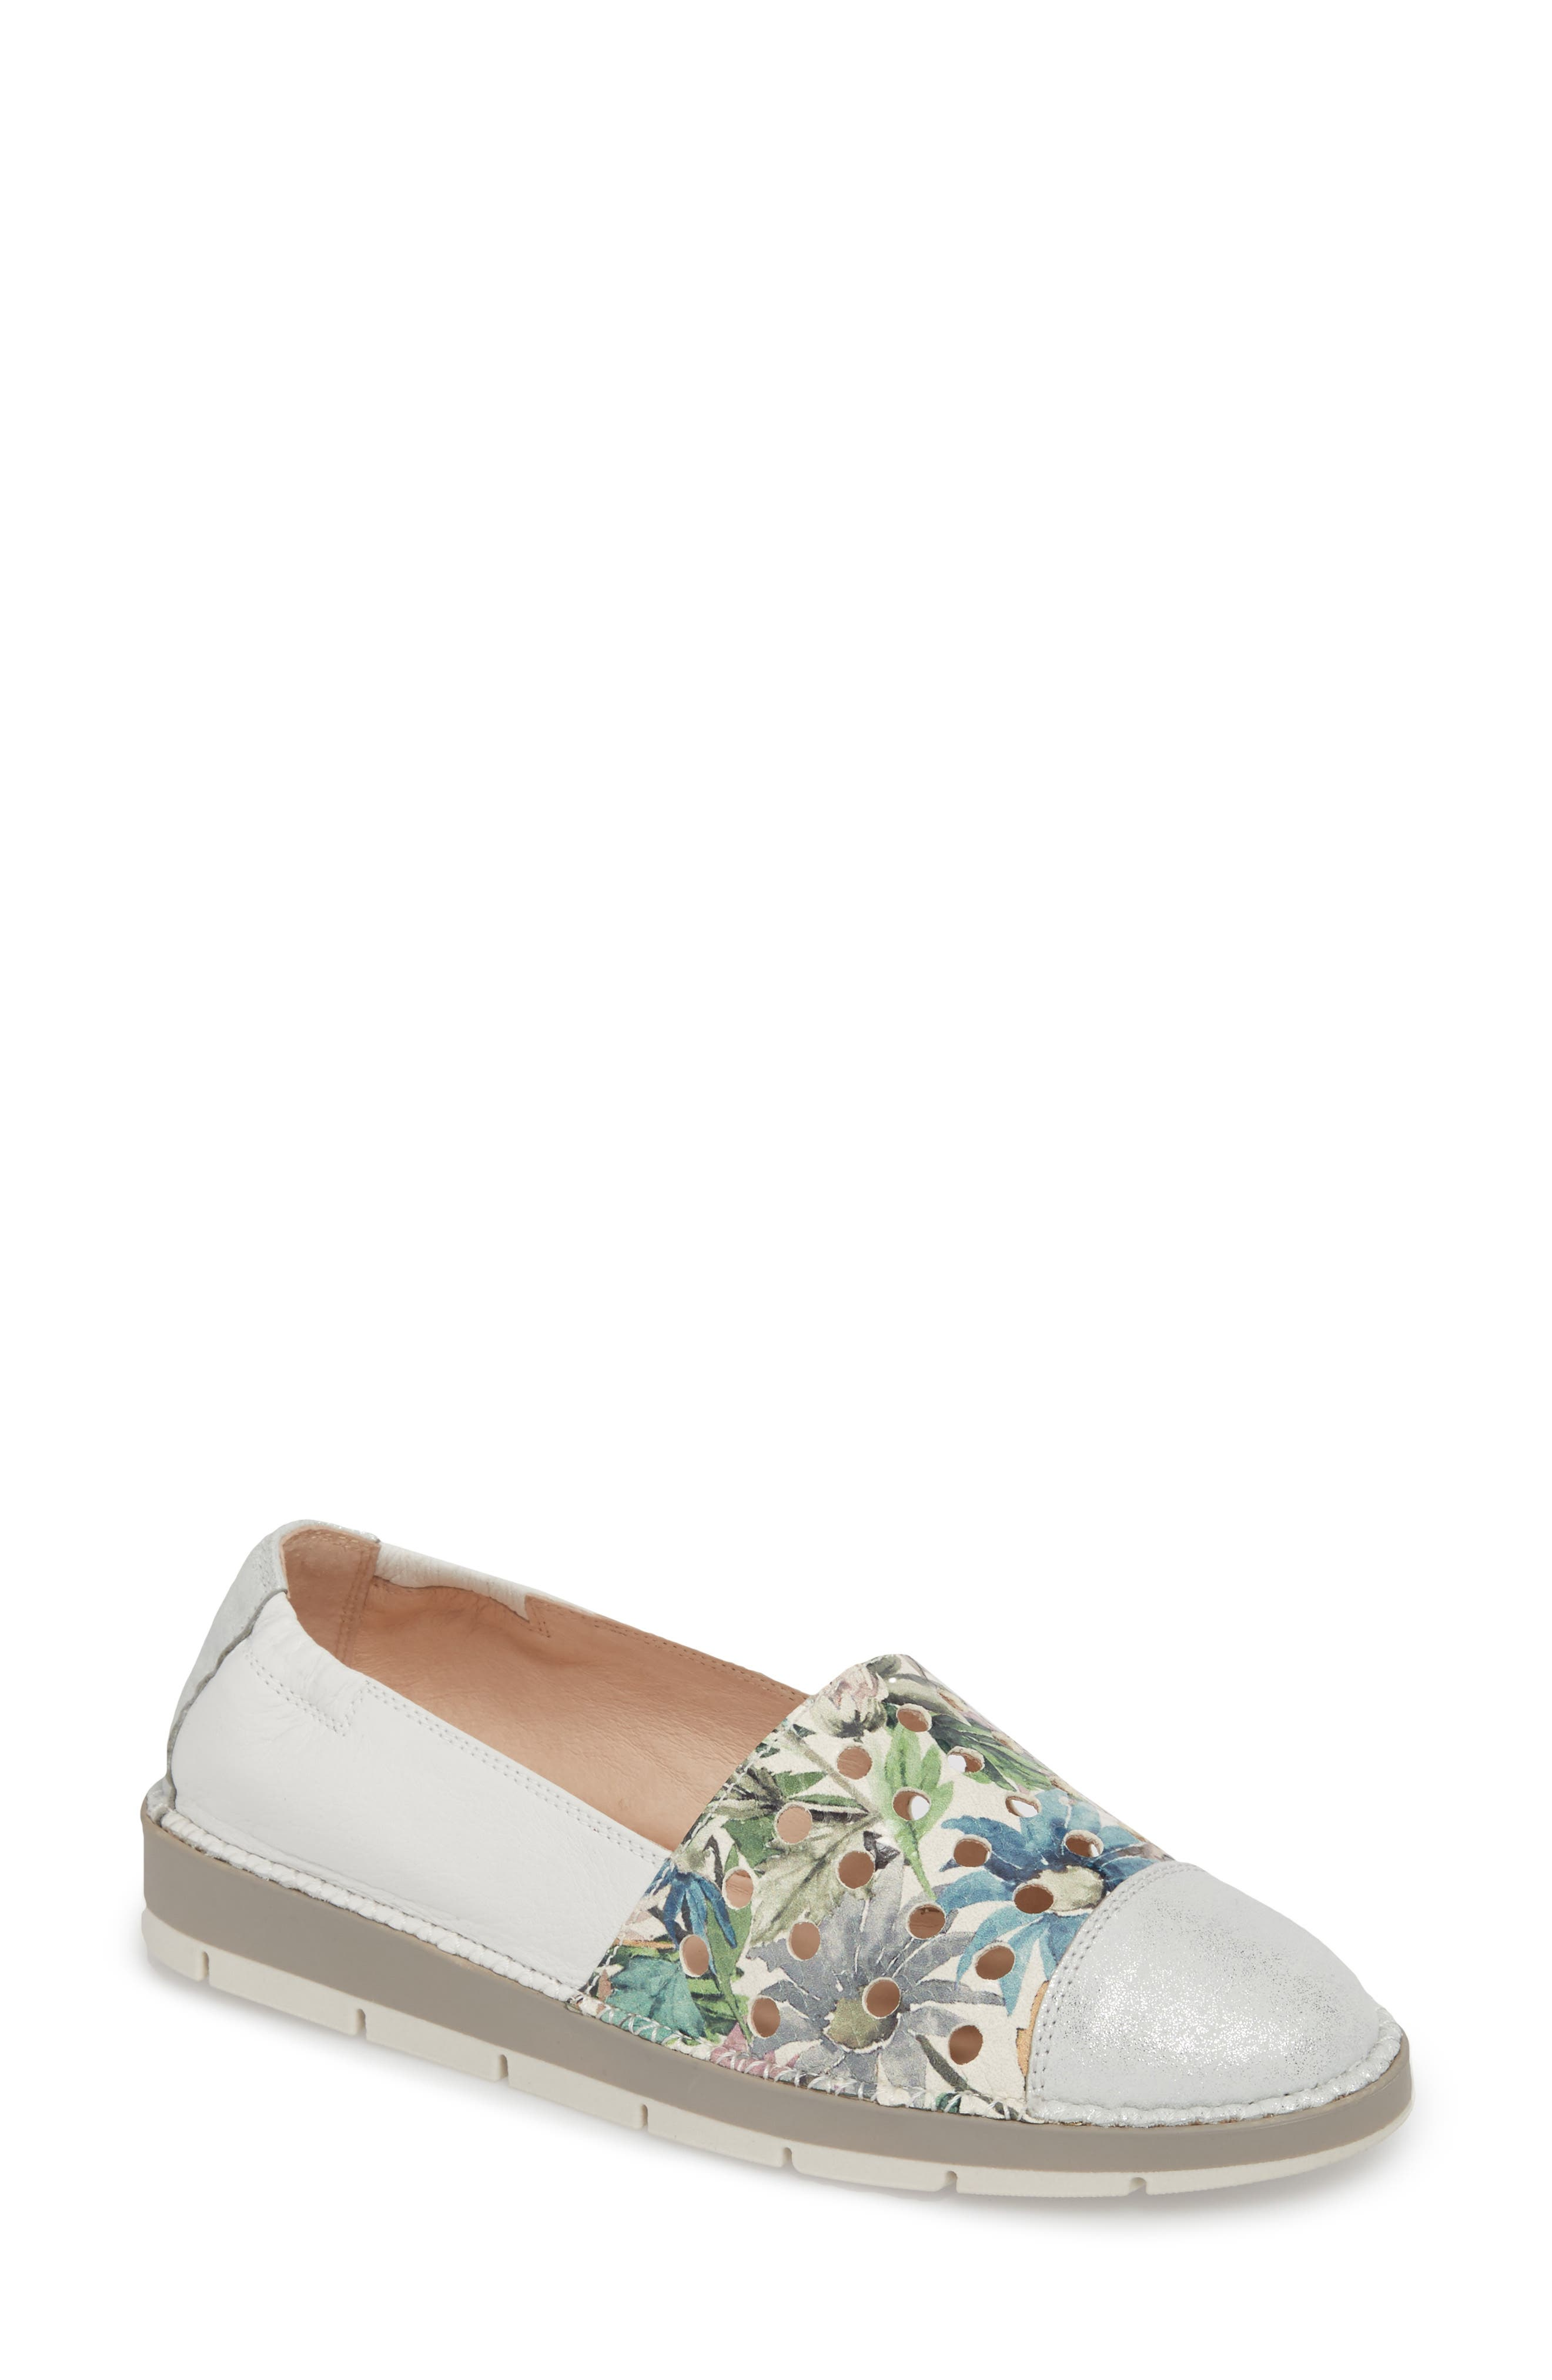 Maiko Flat,                             Main thumbnail 1, color,                             STAR SILVER/ BLOSSOM LEATHER